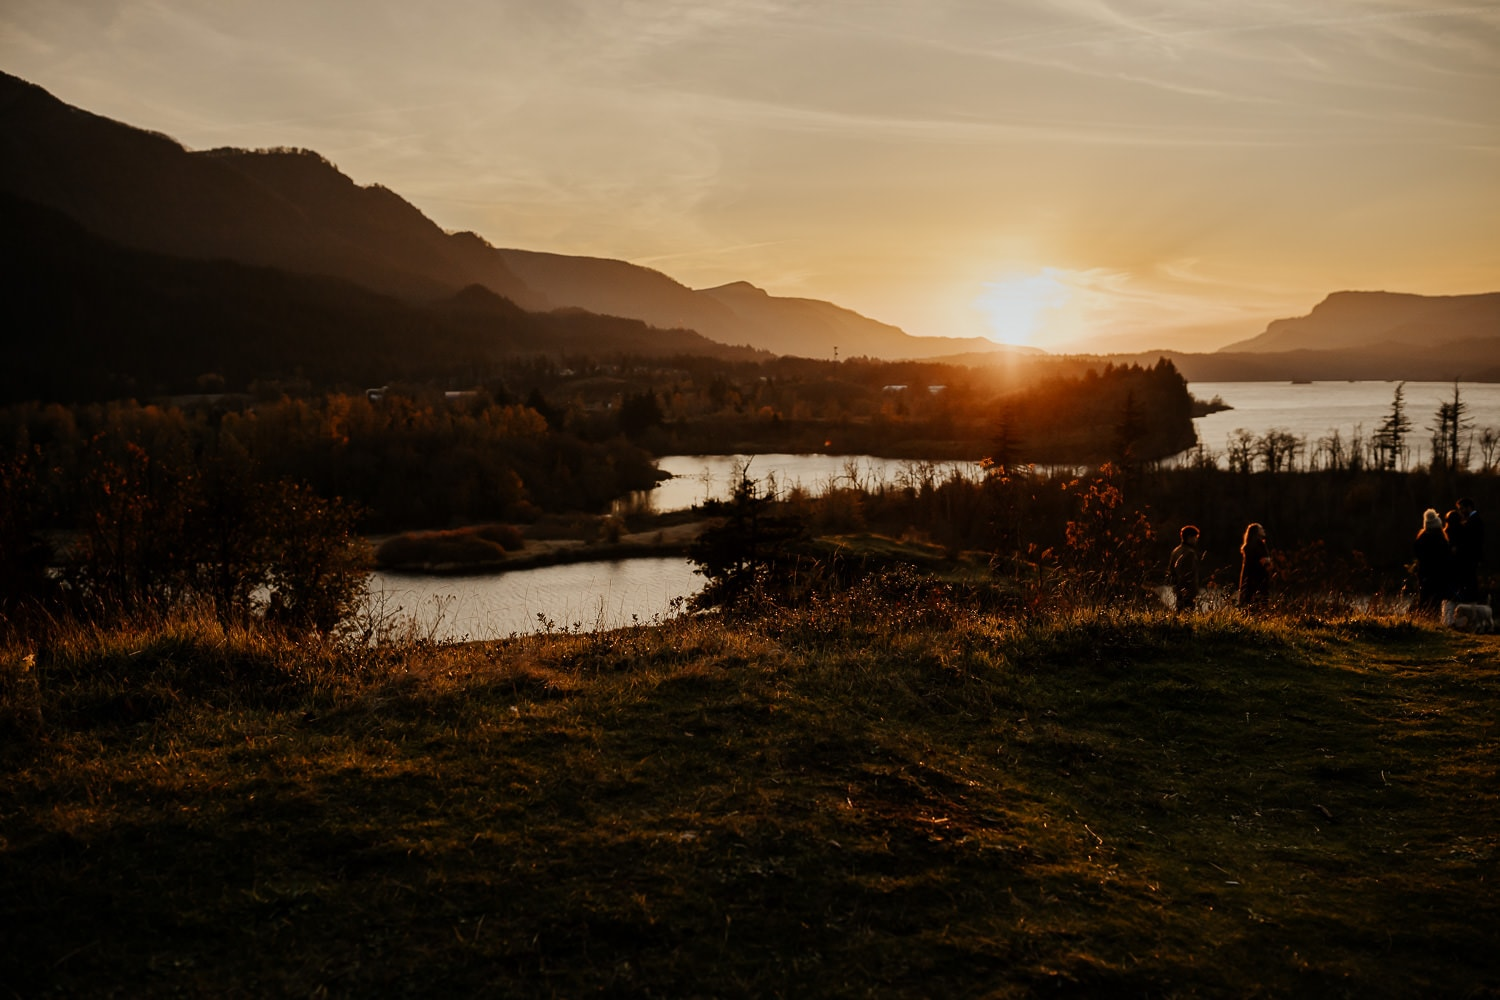 landscape photography image of the columbia river gorge at sunset near cascade locks